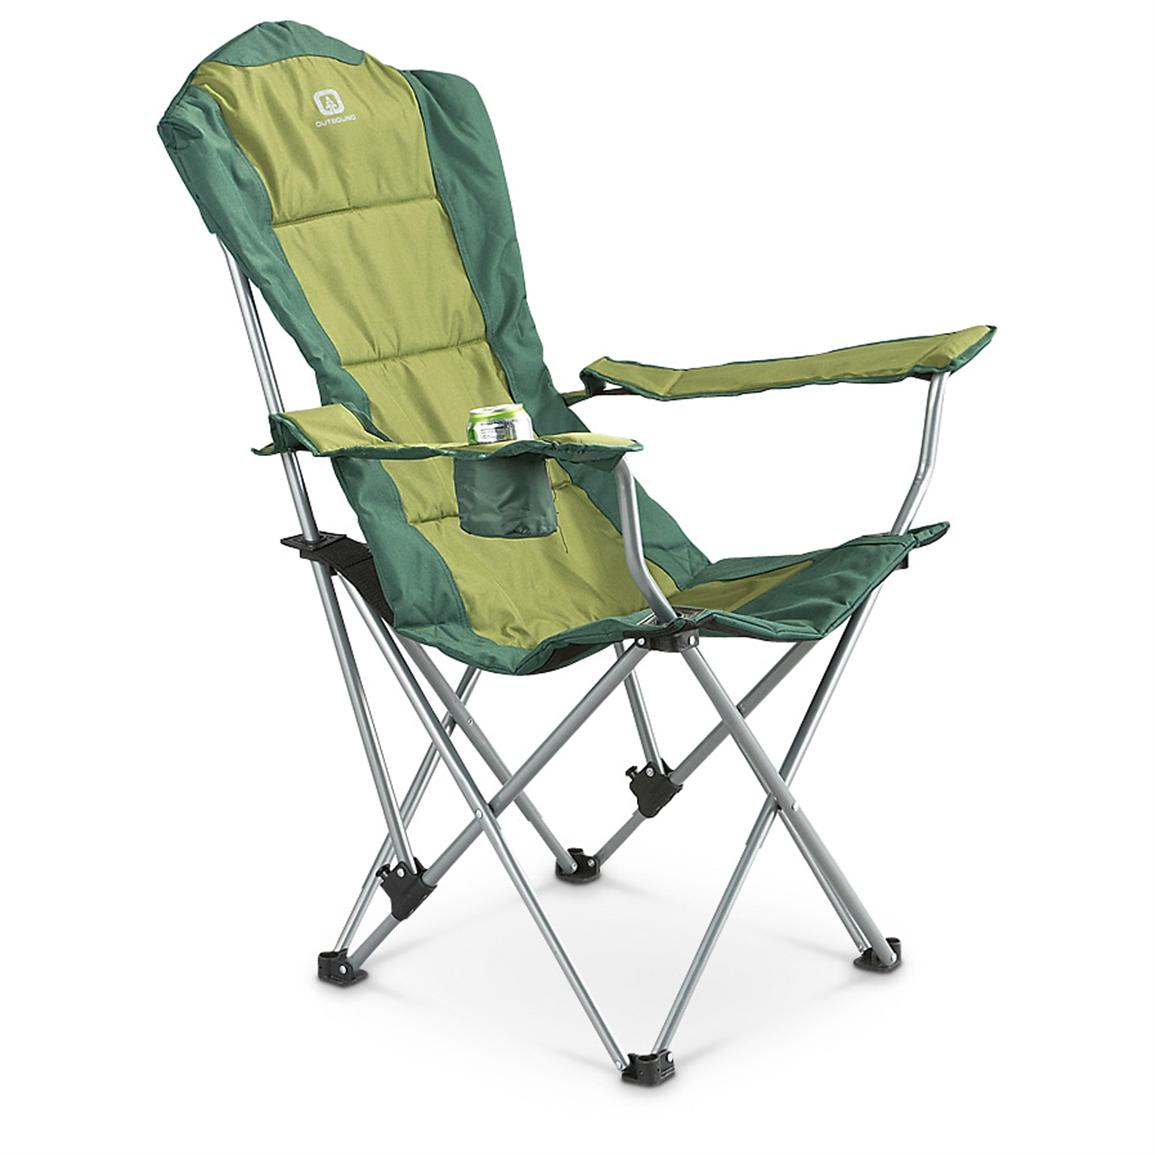 portable sofa chair how do you clean microfiber campmate recliner 584062 chairs at